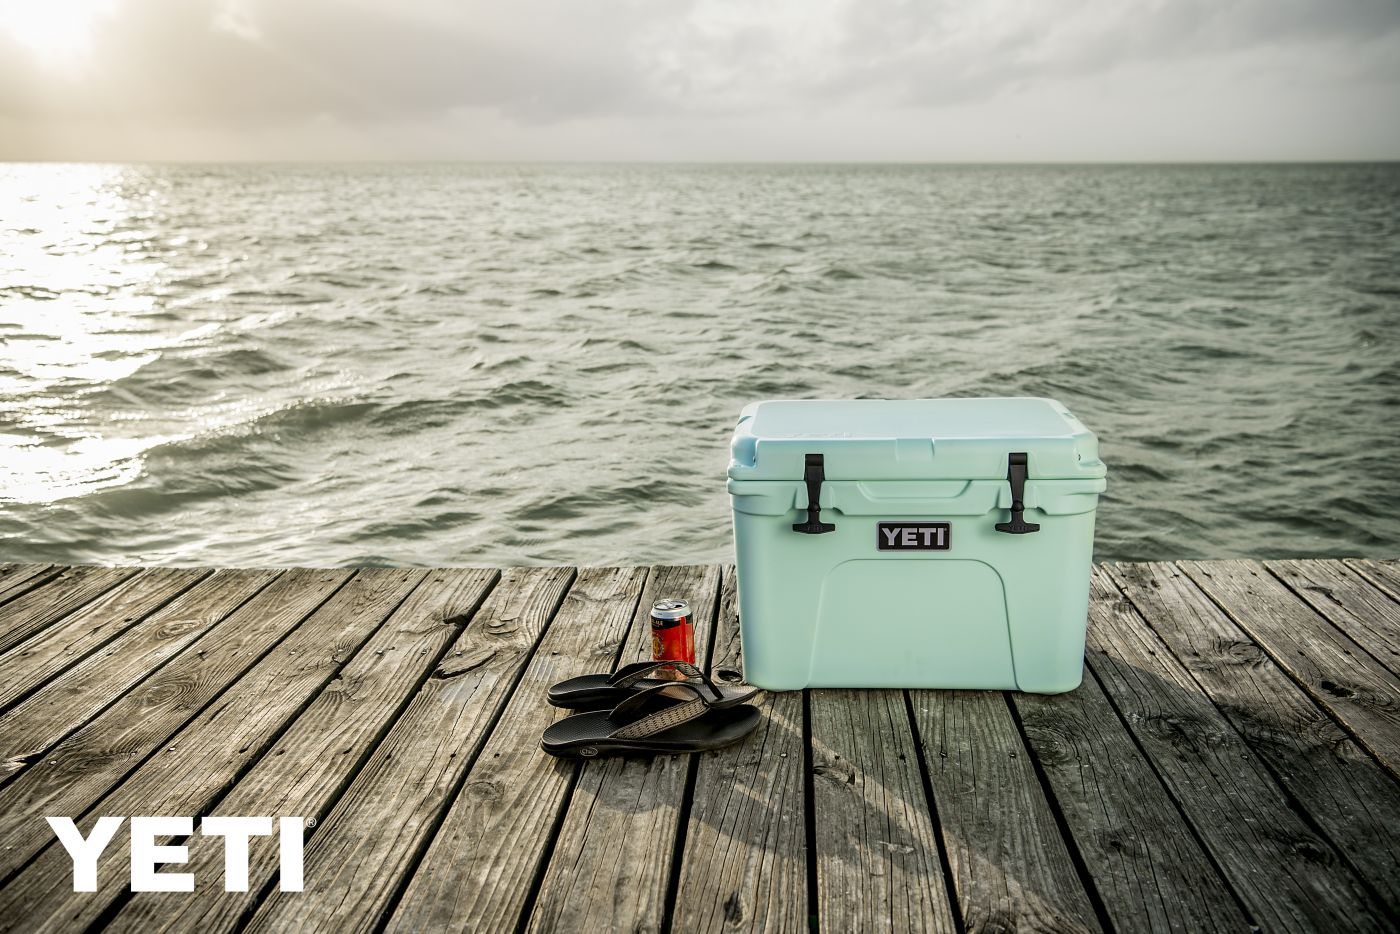 YETI Tundra 35 cooler for sale - G5 Feed & Outdoor Tampa Bay